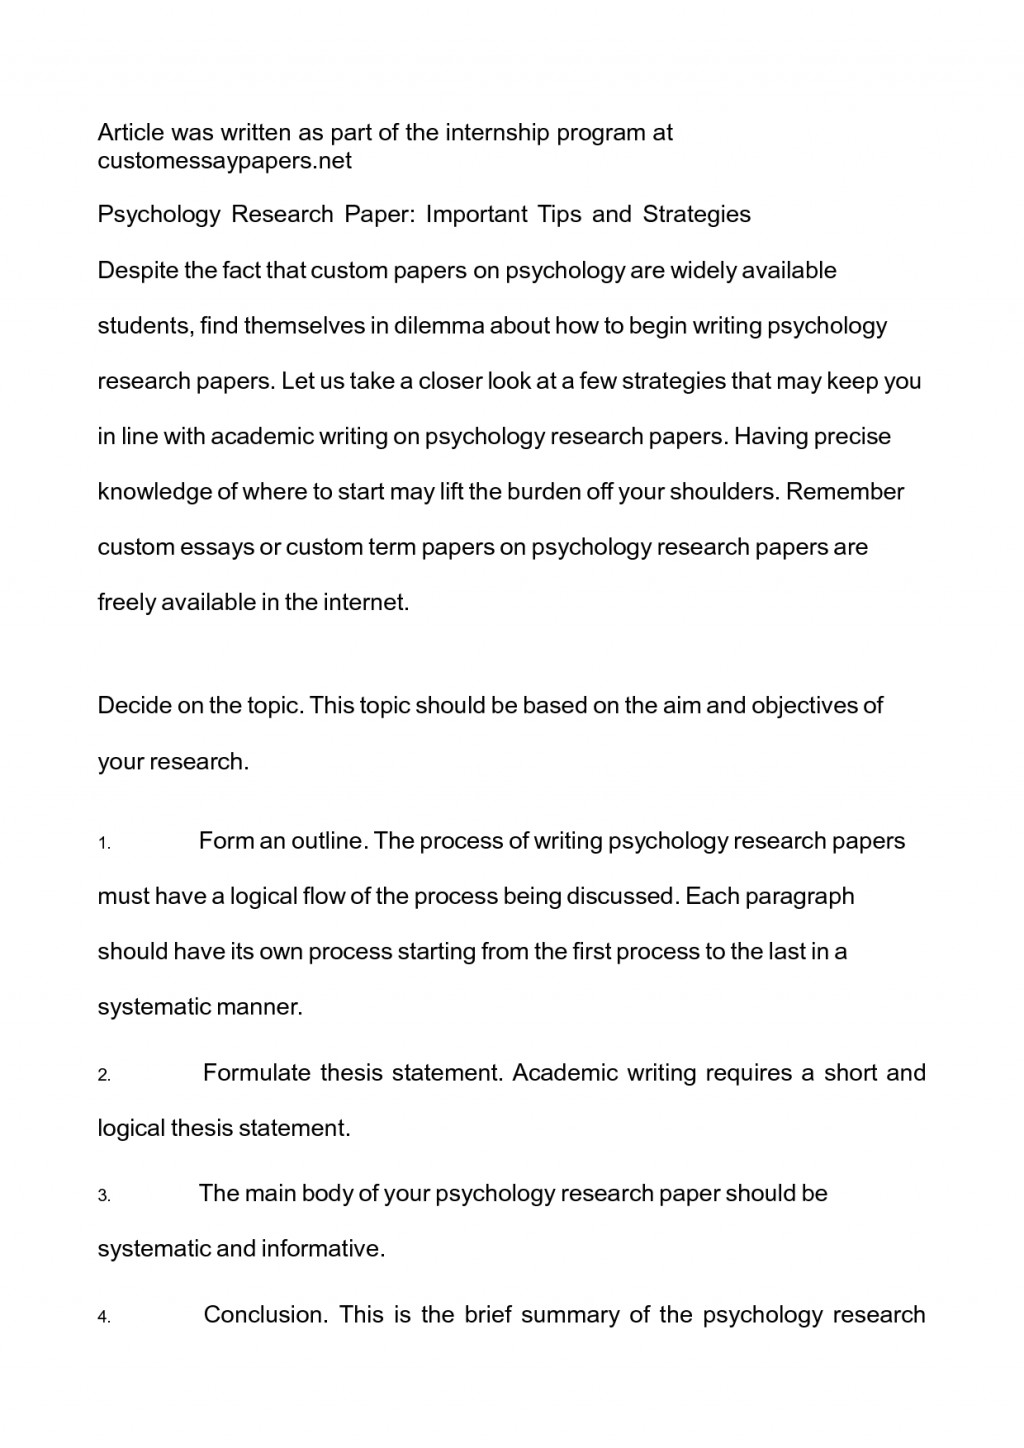 004 Psychology Research Paper Writing Services Wonderful On Free Forensic Pdf Topics Large